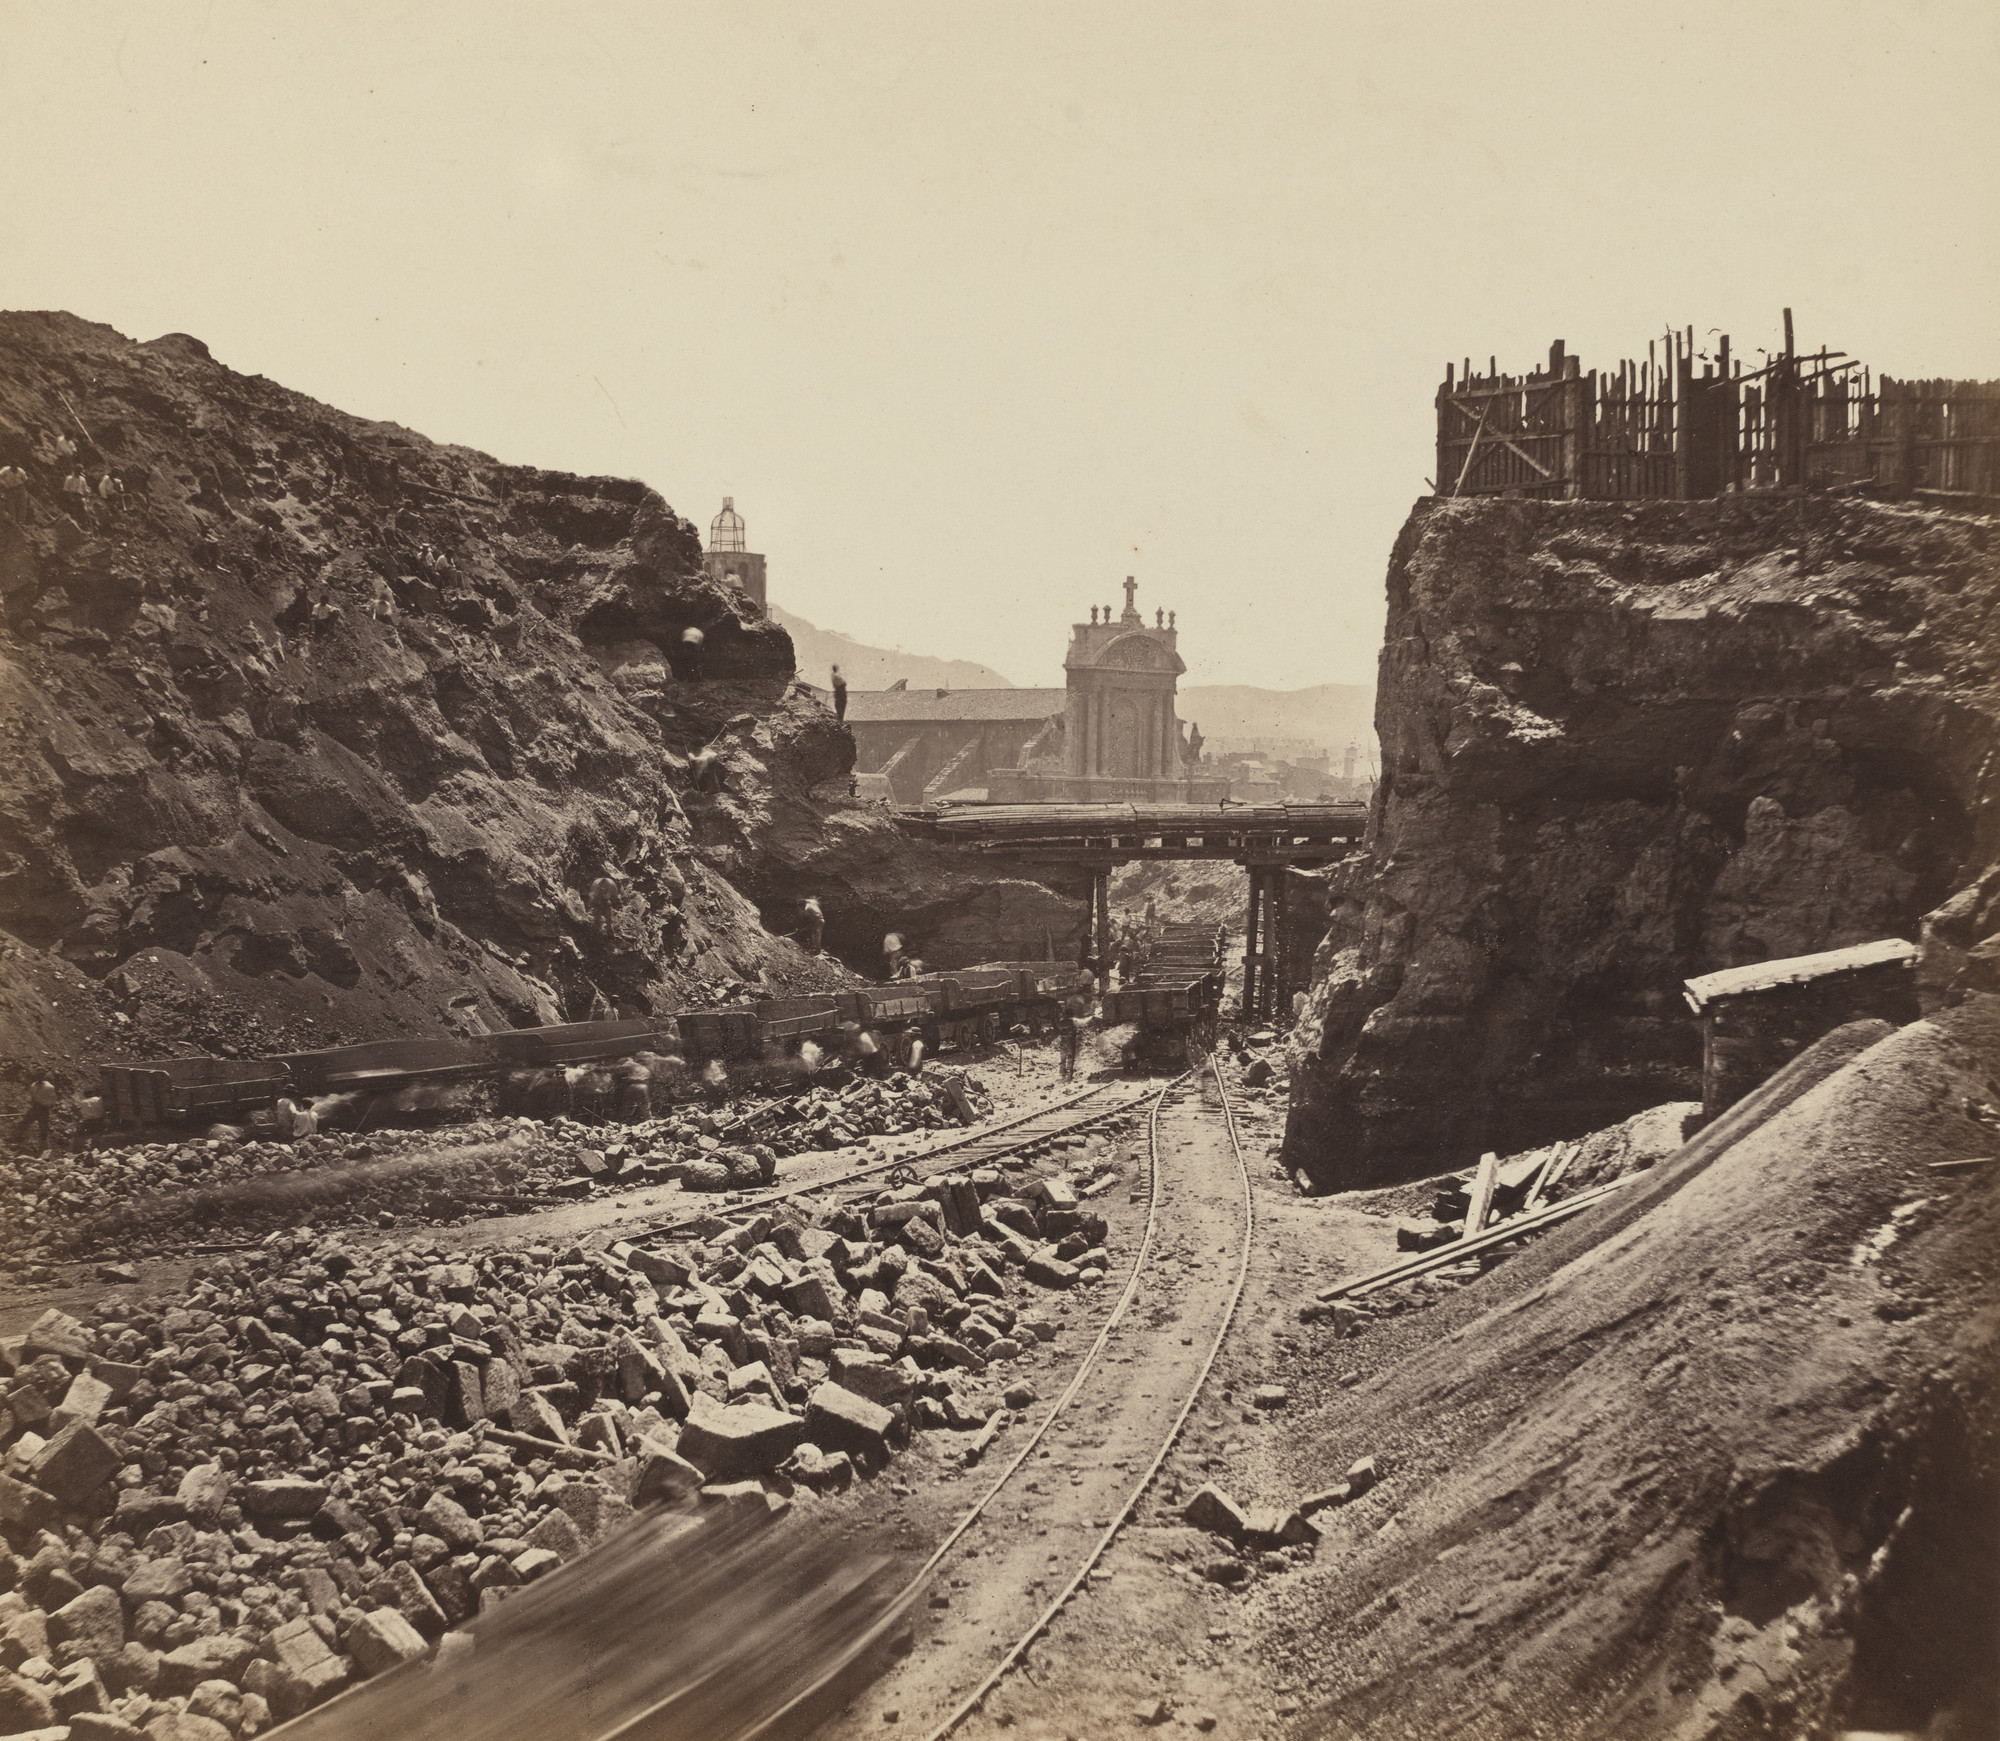 Adolphe Terris. Construction of Rue Impériale in Marseille. View of the Construction Site from the Middle of Rue Montbrion. 1863